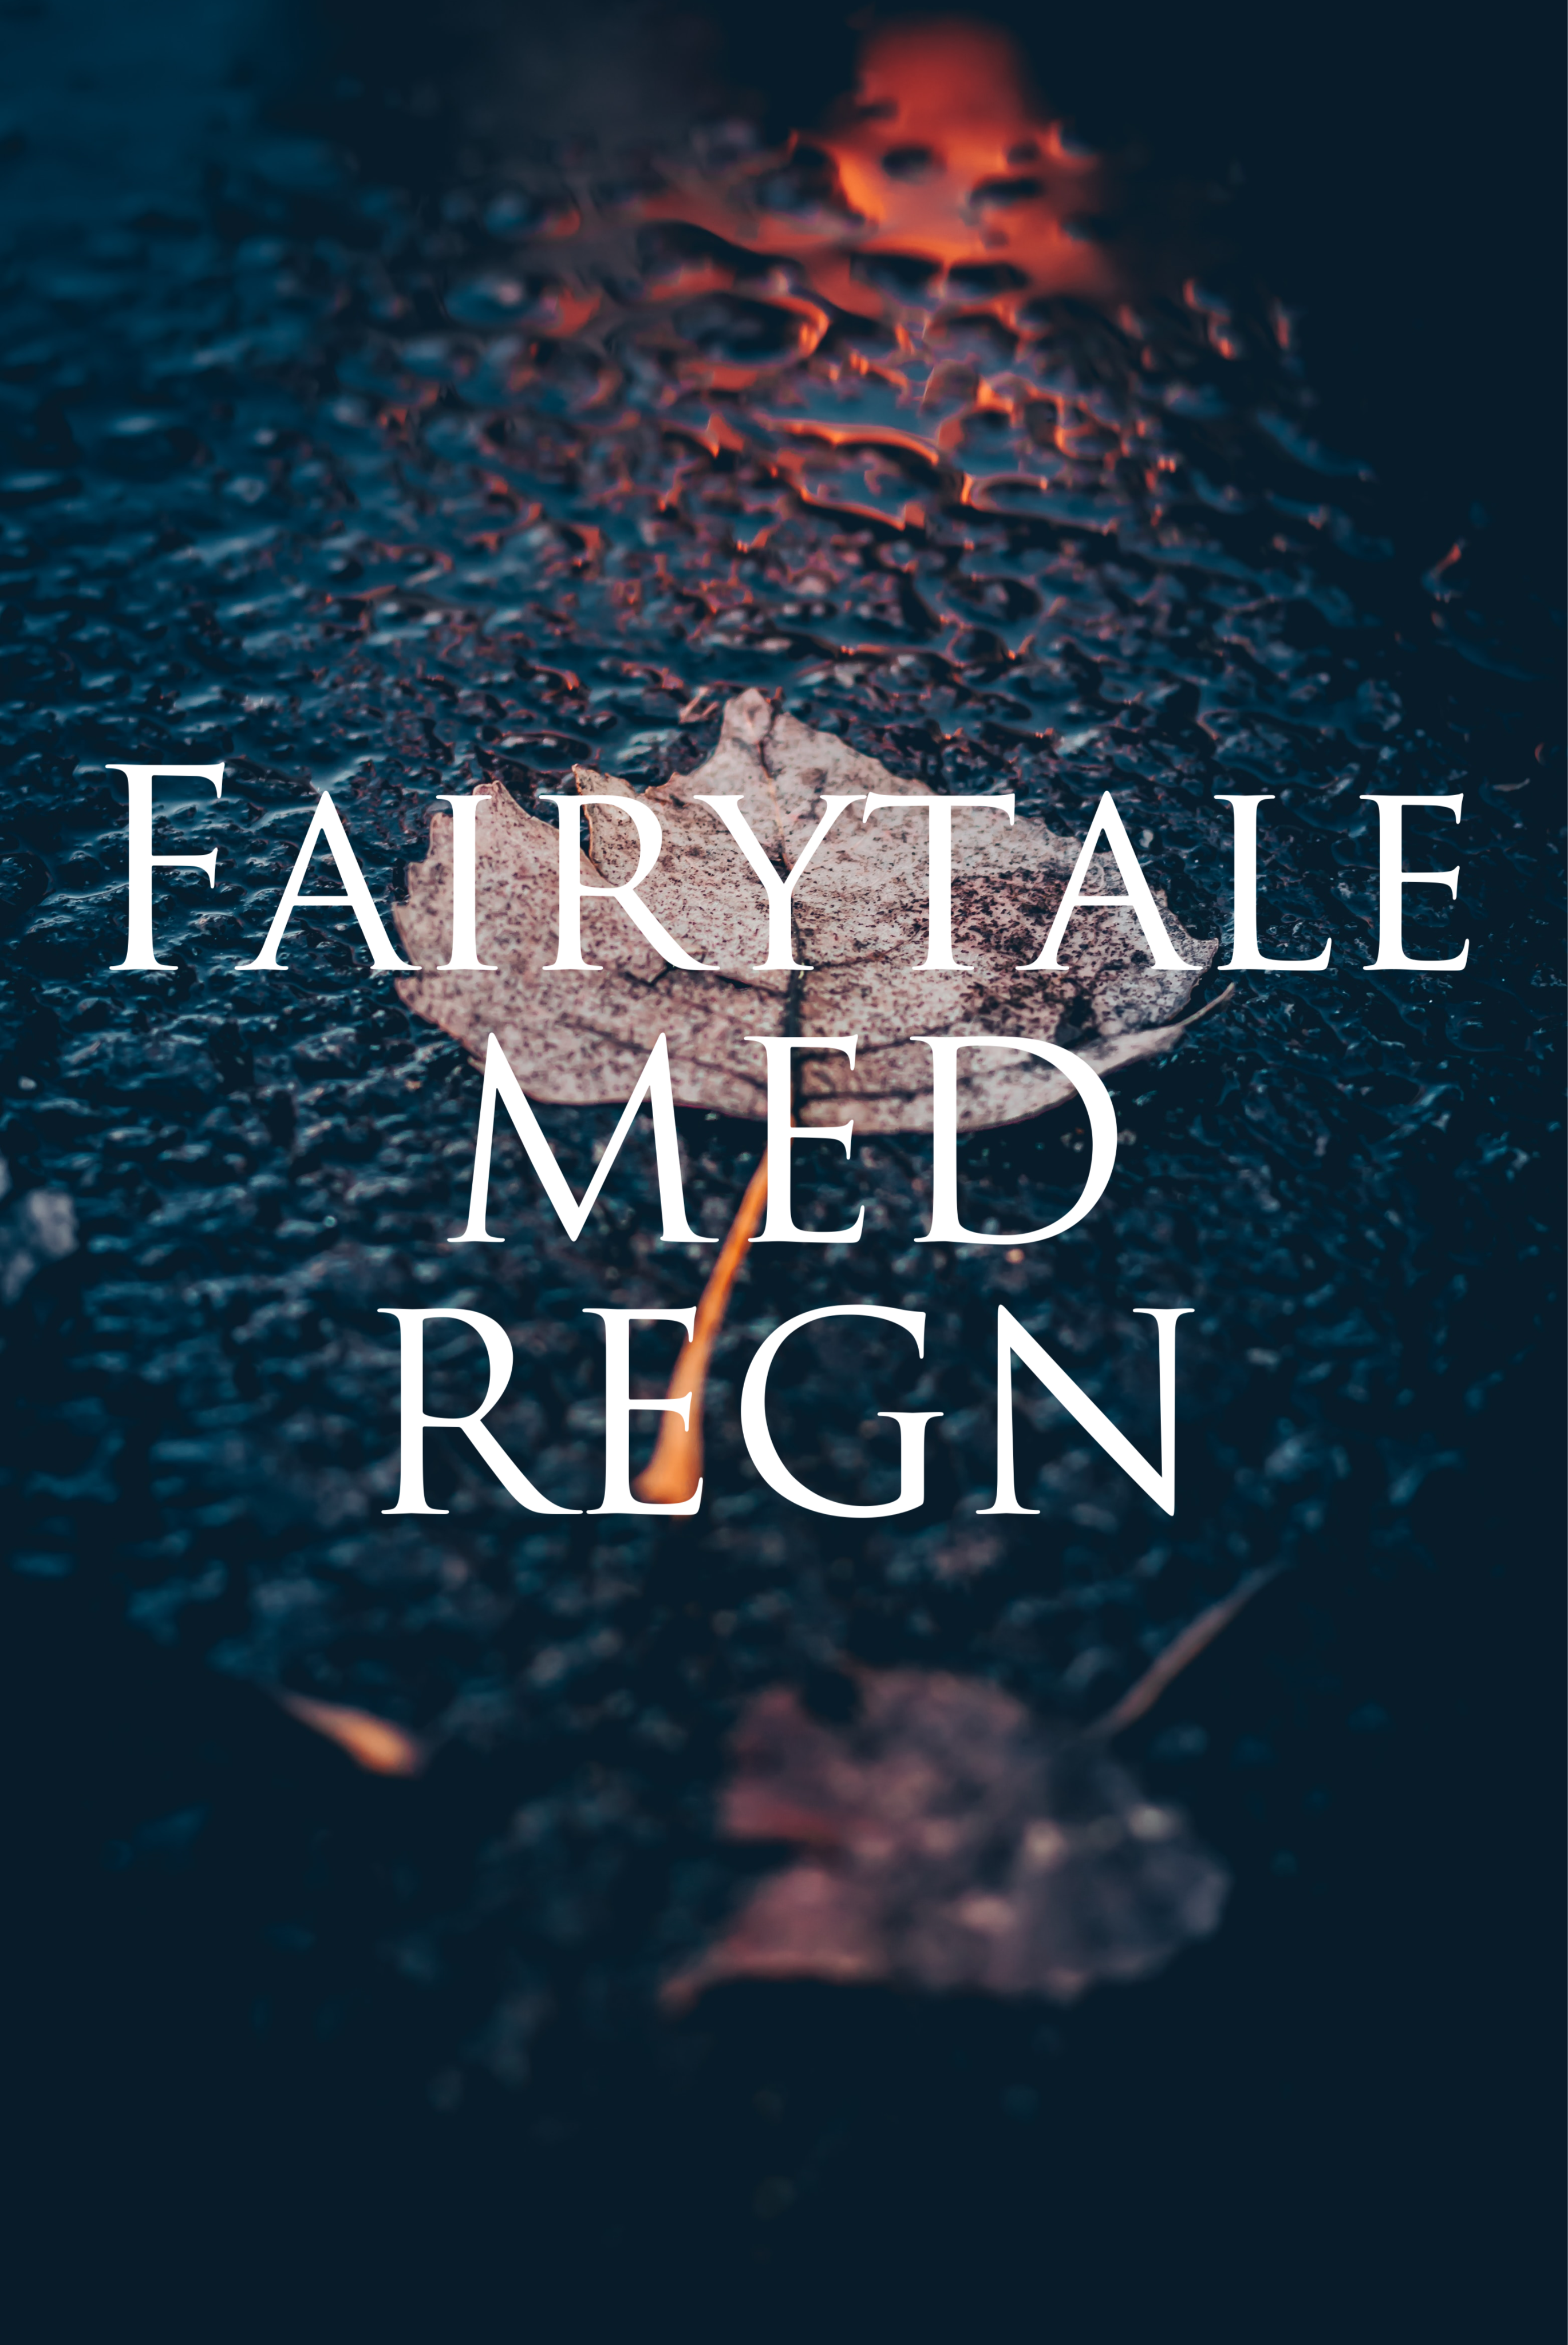 FAIRYTALE med REGN